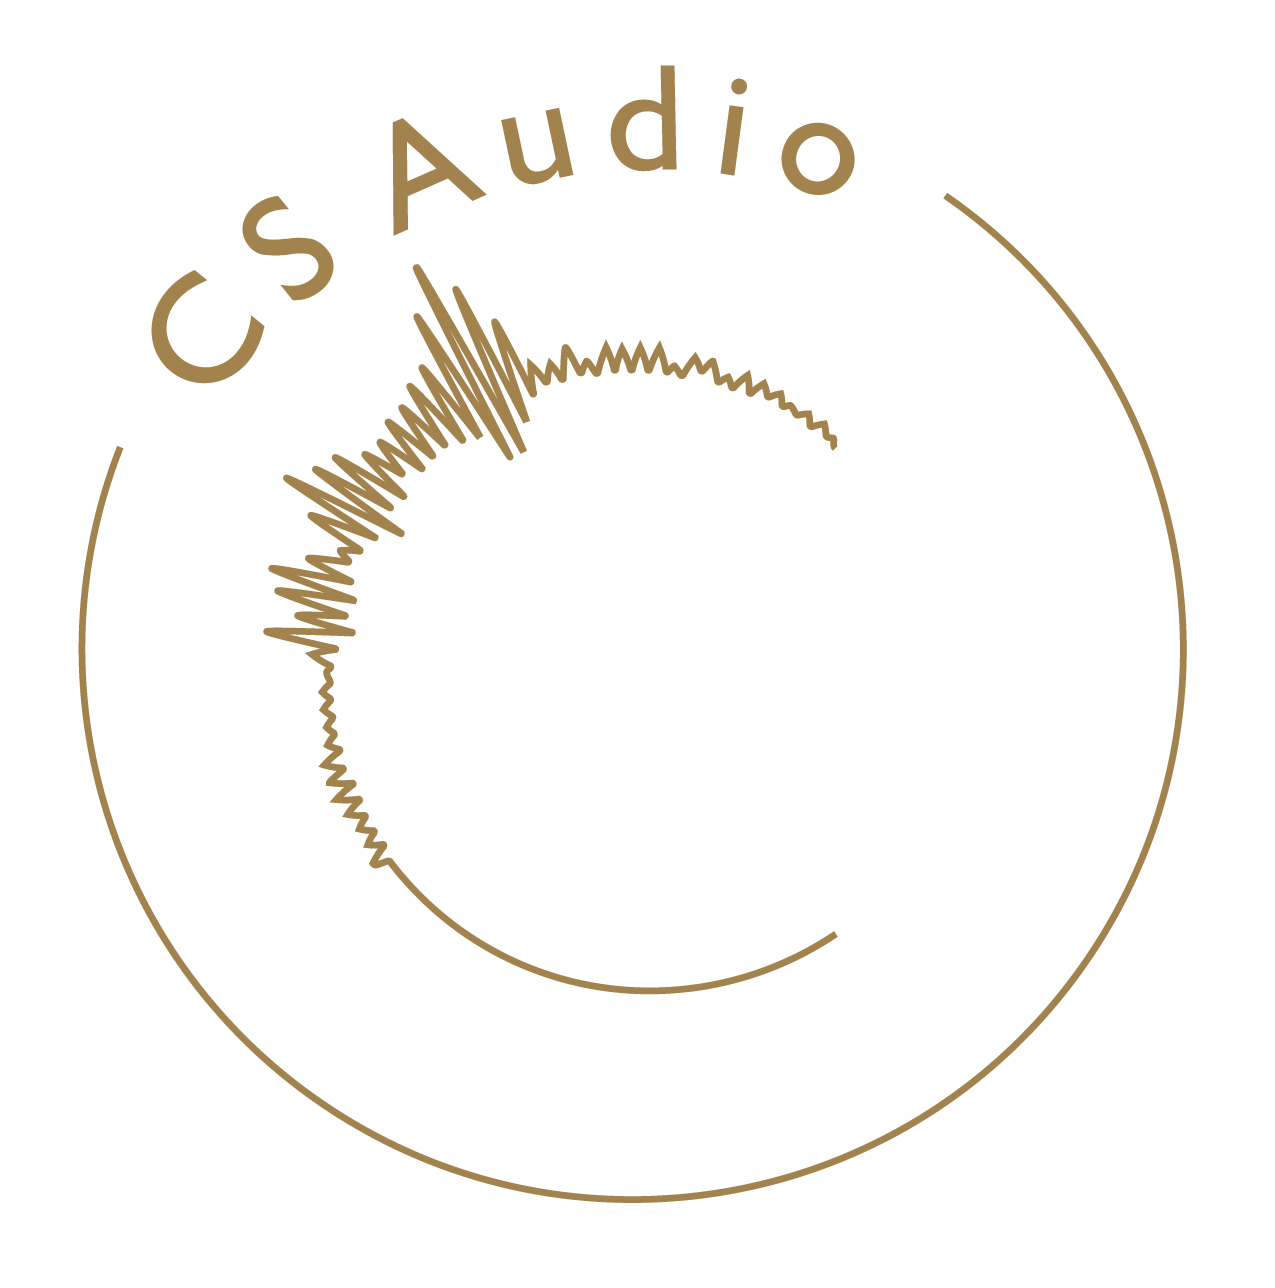 CS Audio